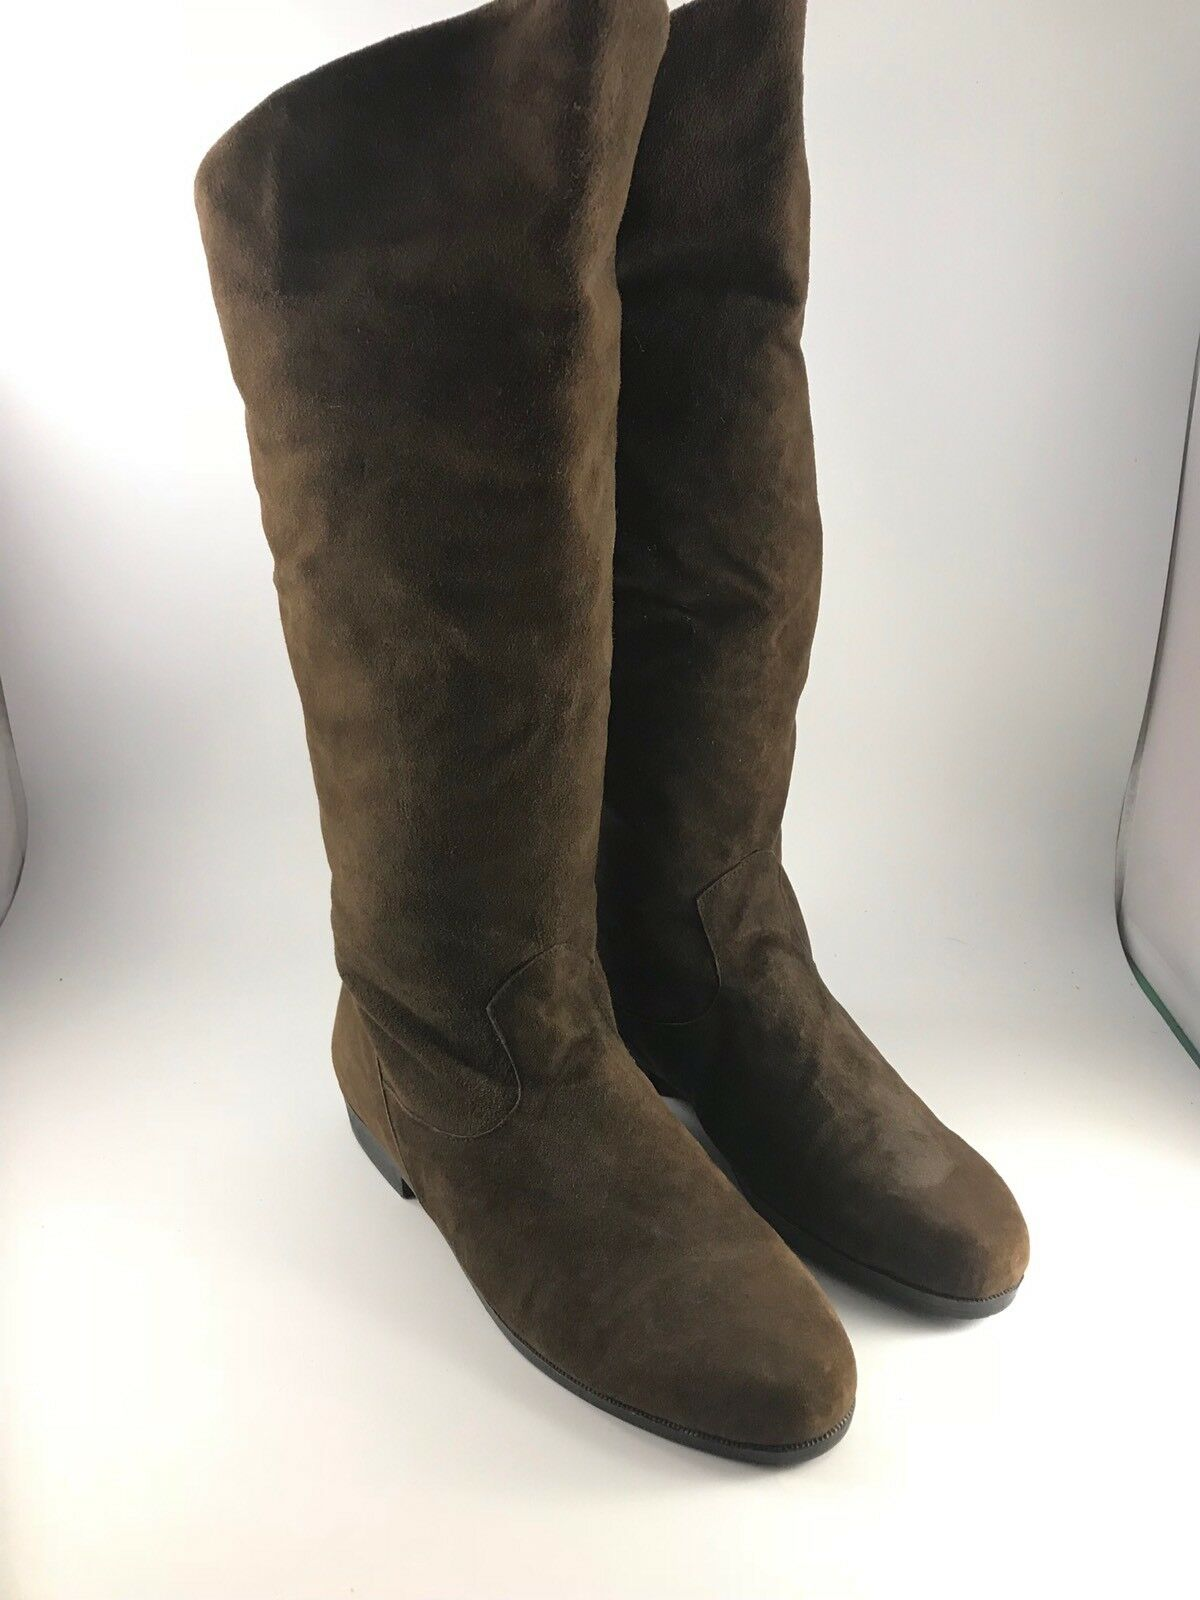 PAIR OF WOMEN'S SIZE 8.5 BROWN SUEDE LEATHER JACK SPRAT BOOTS